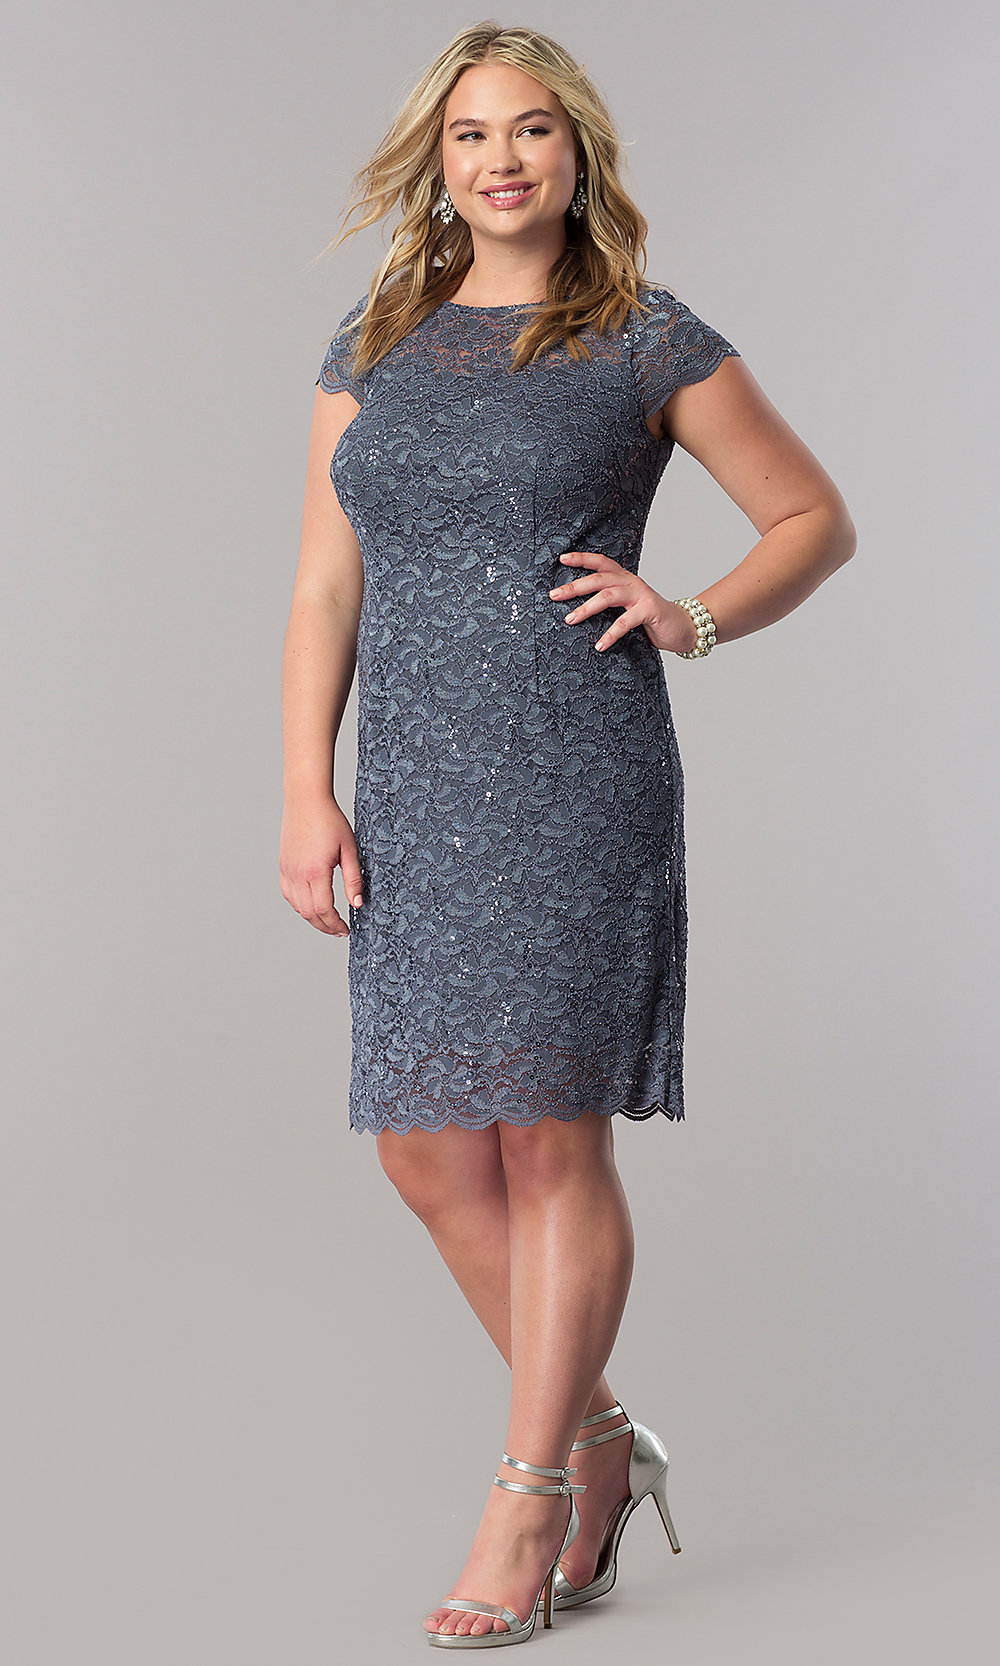 Lace Plus-Size Mother-of-the-Bride Dress - PromGirl